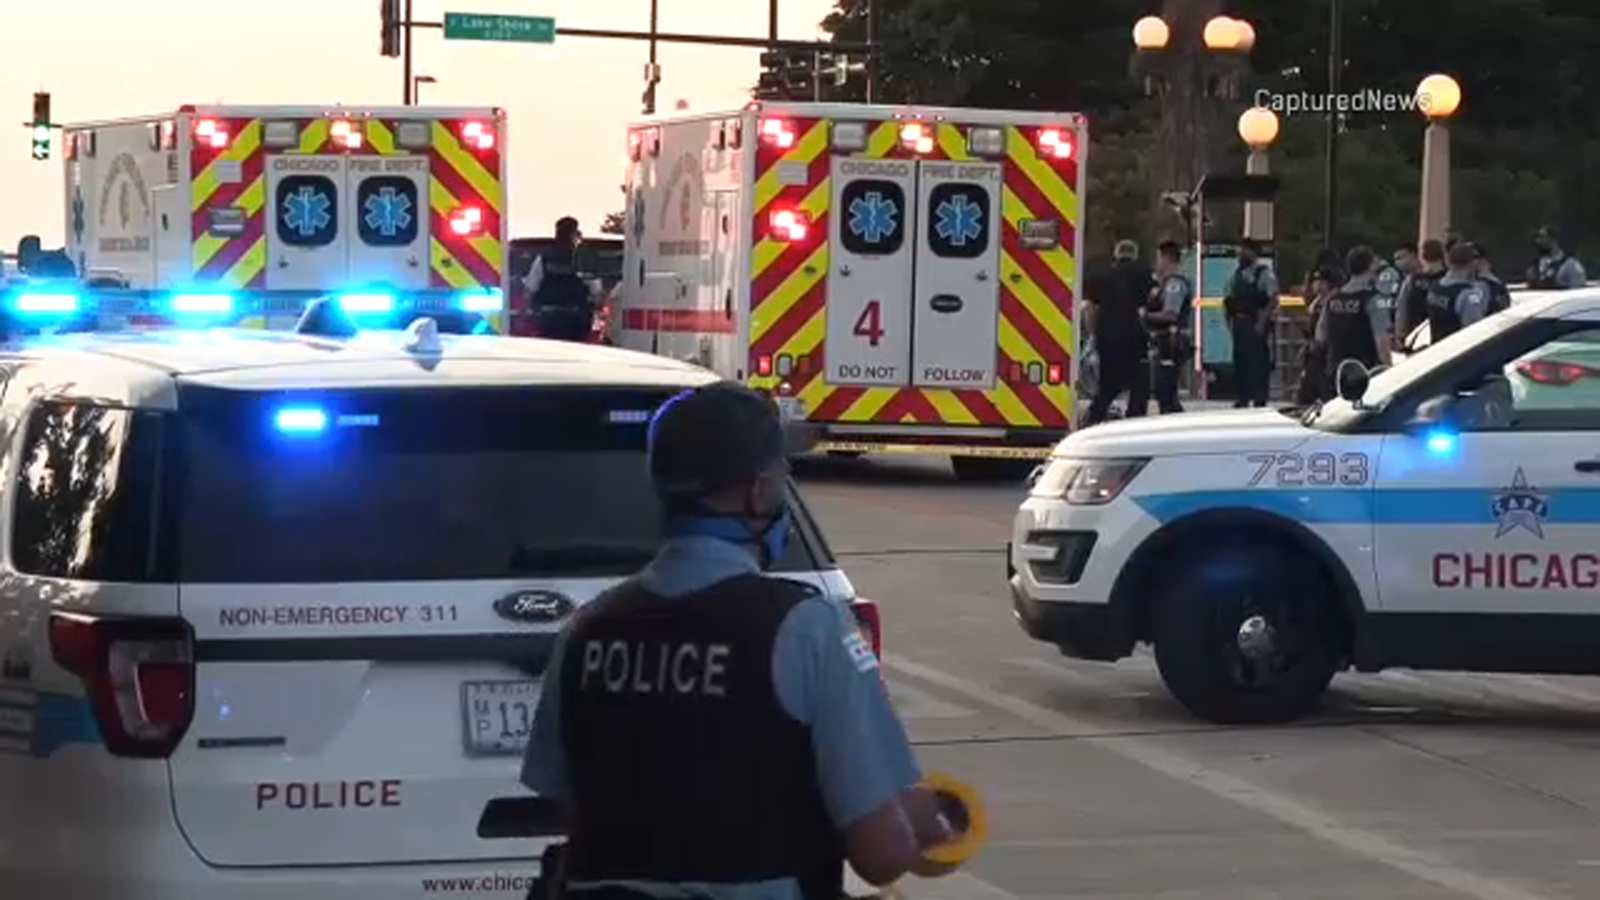 Chicago July 4th: 22 shot, 3 fatally, in weekend violence so far, police say